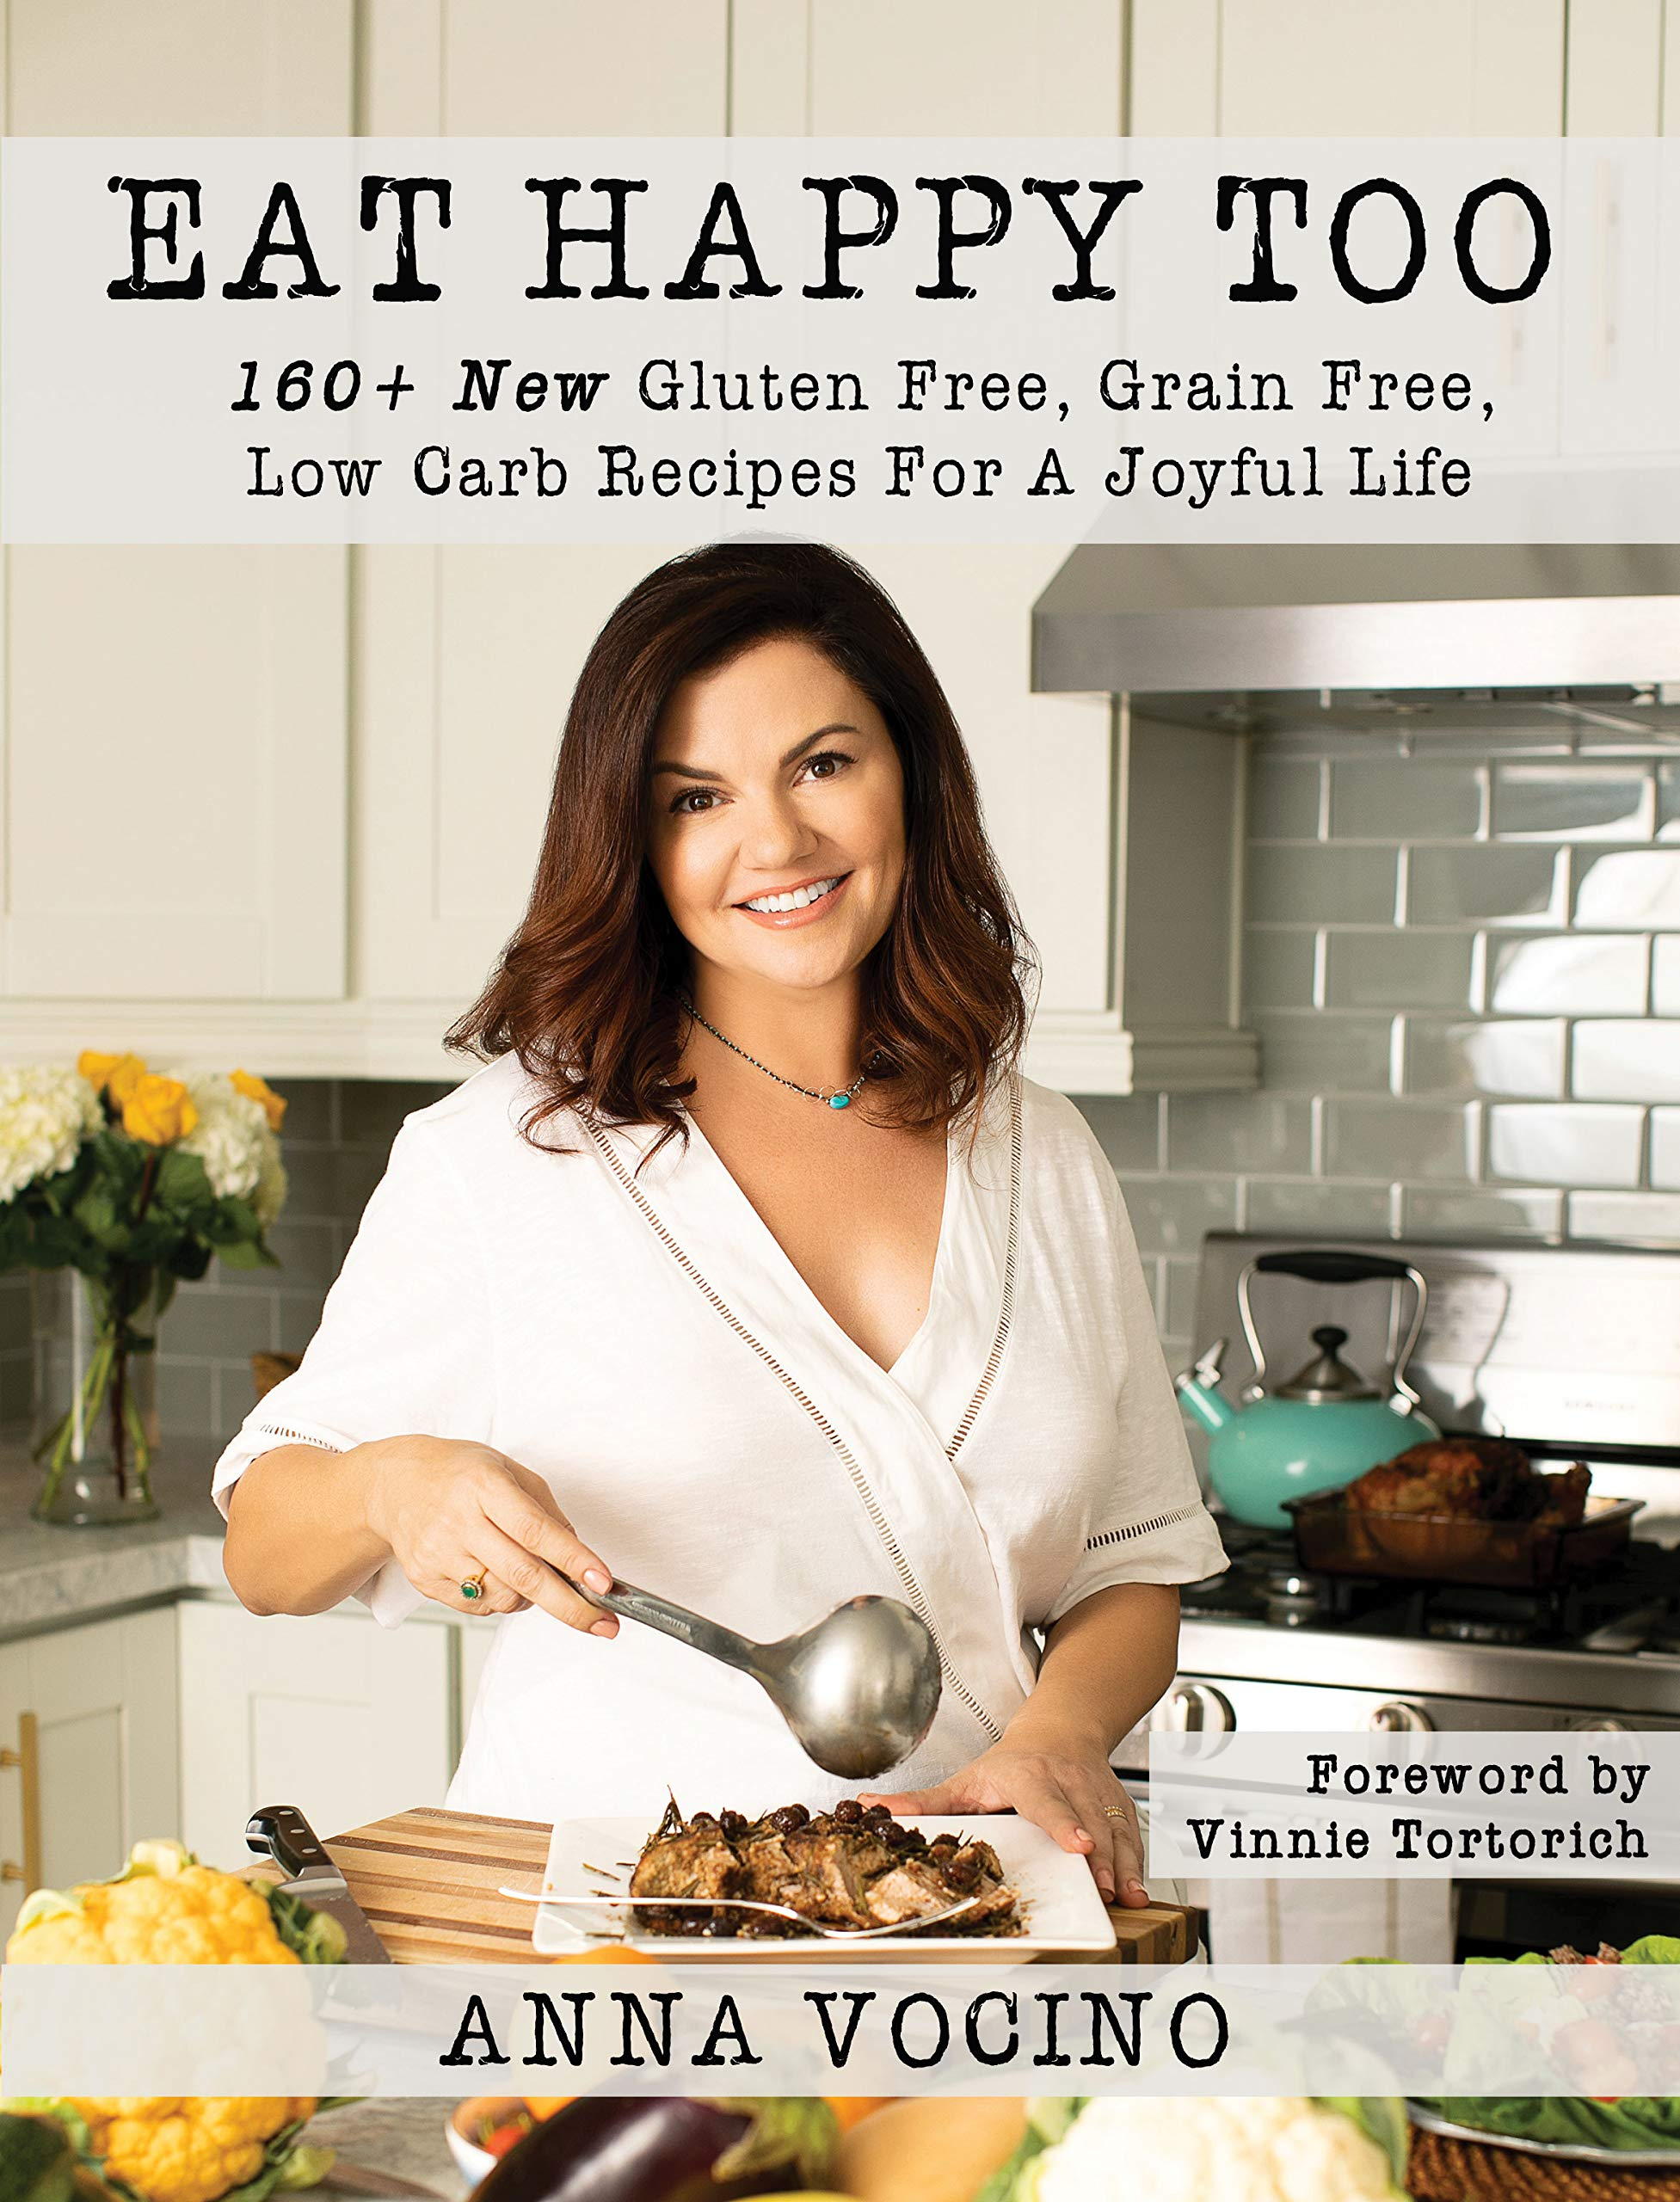 Eat Happy, Too: 160+ New Gluten Free, Grain Free, Low Carb Recipes Made from Real Foods for a Joyful Life by Telemachus Press, LLC